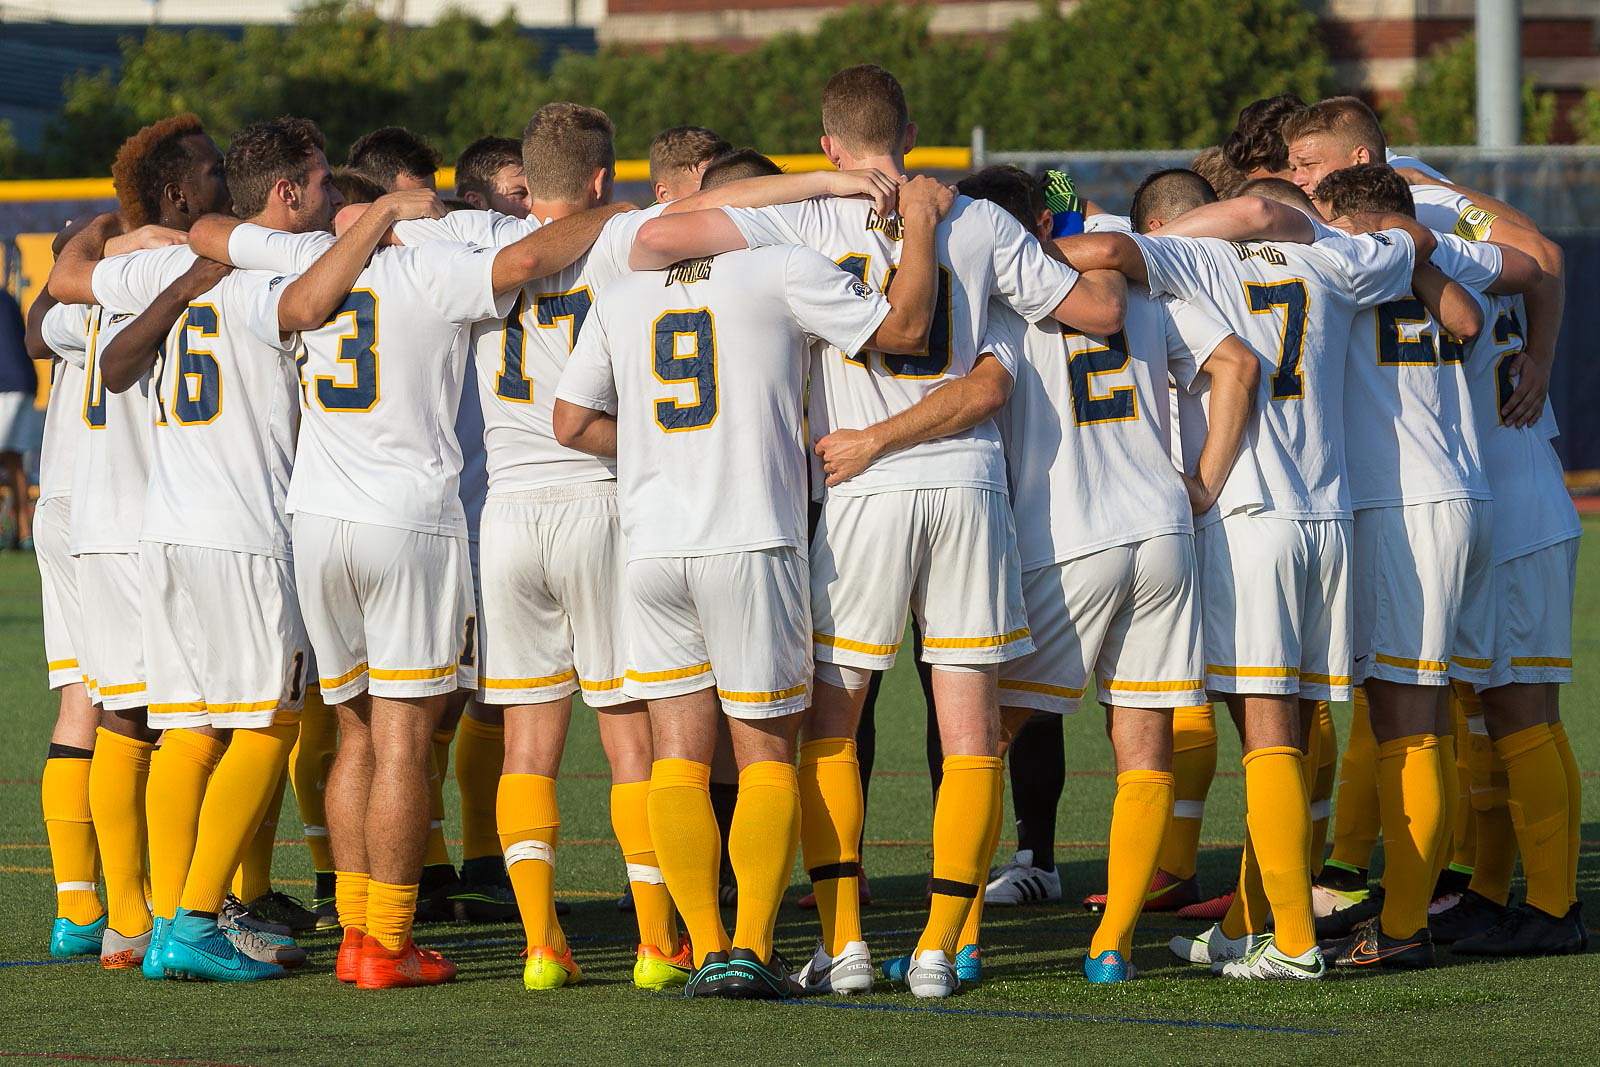 Canisius will visit Niagara and host St. Bonaventure in their other Big 4 matches. (Don Nieman/Special to The News)